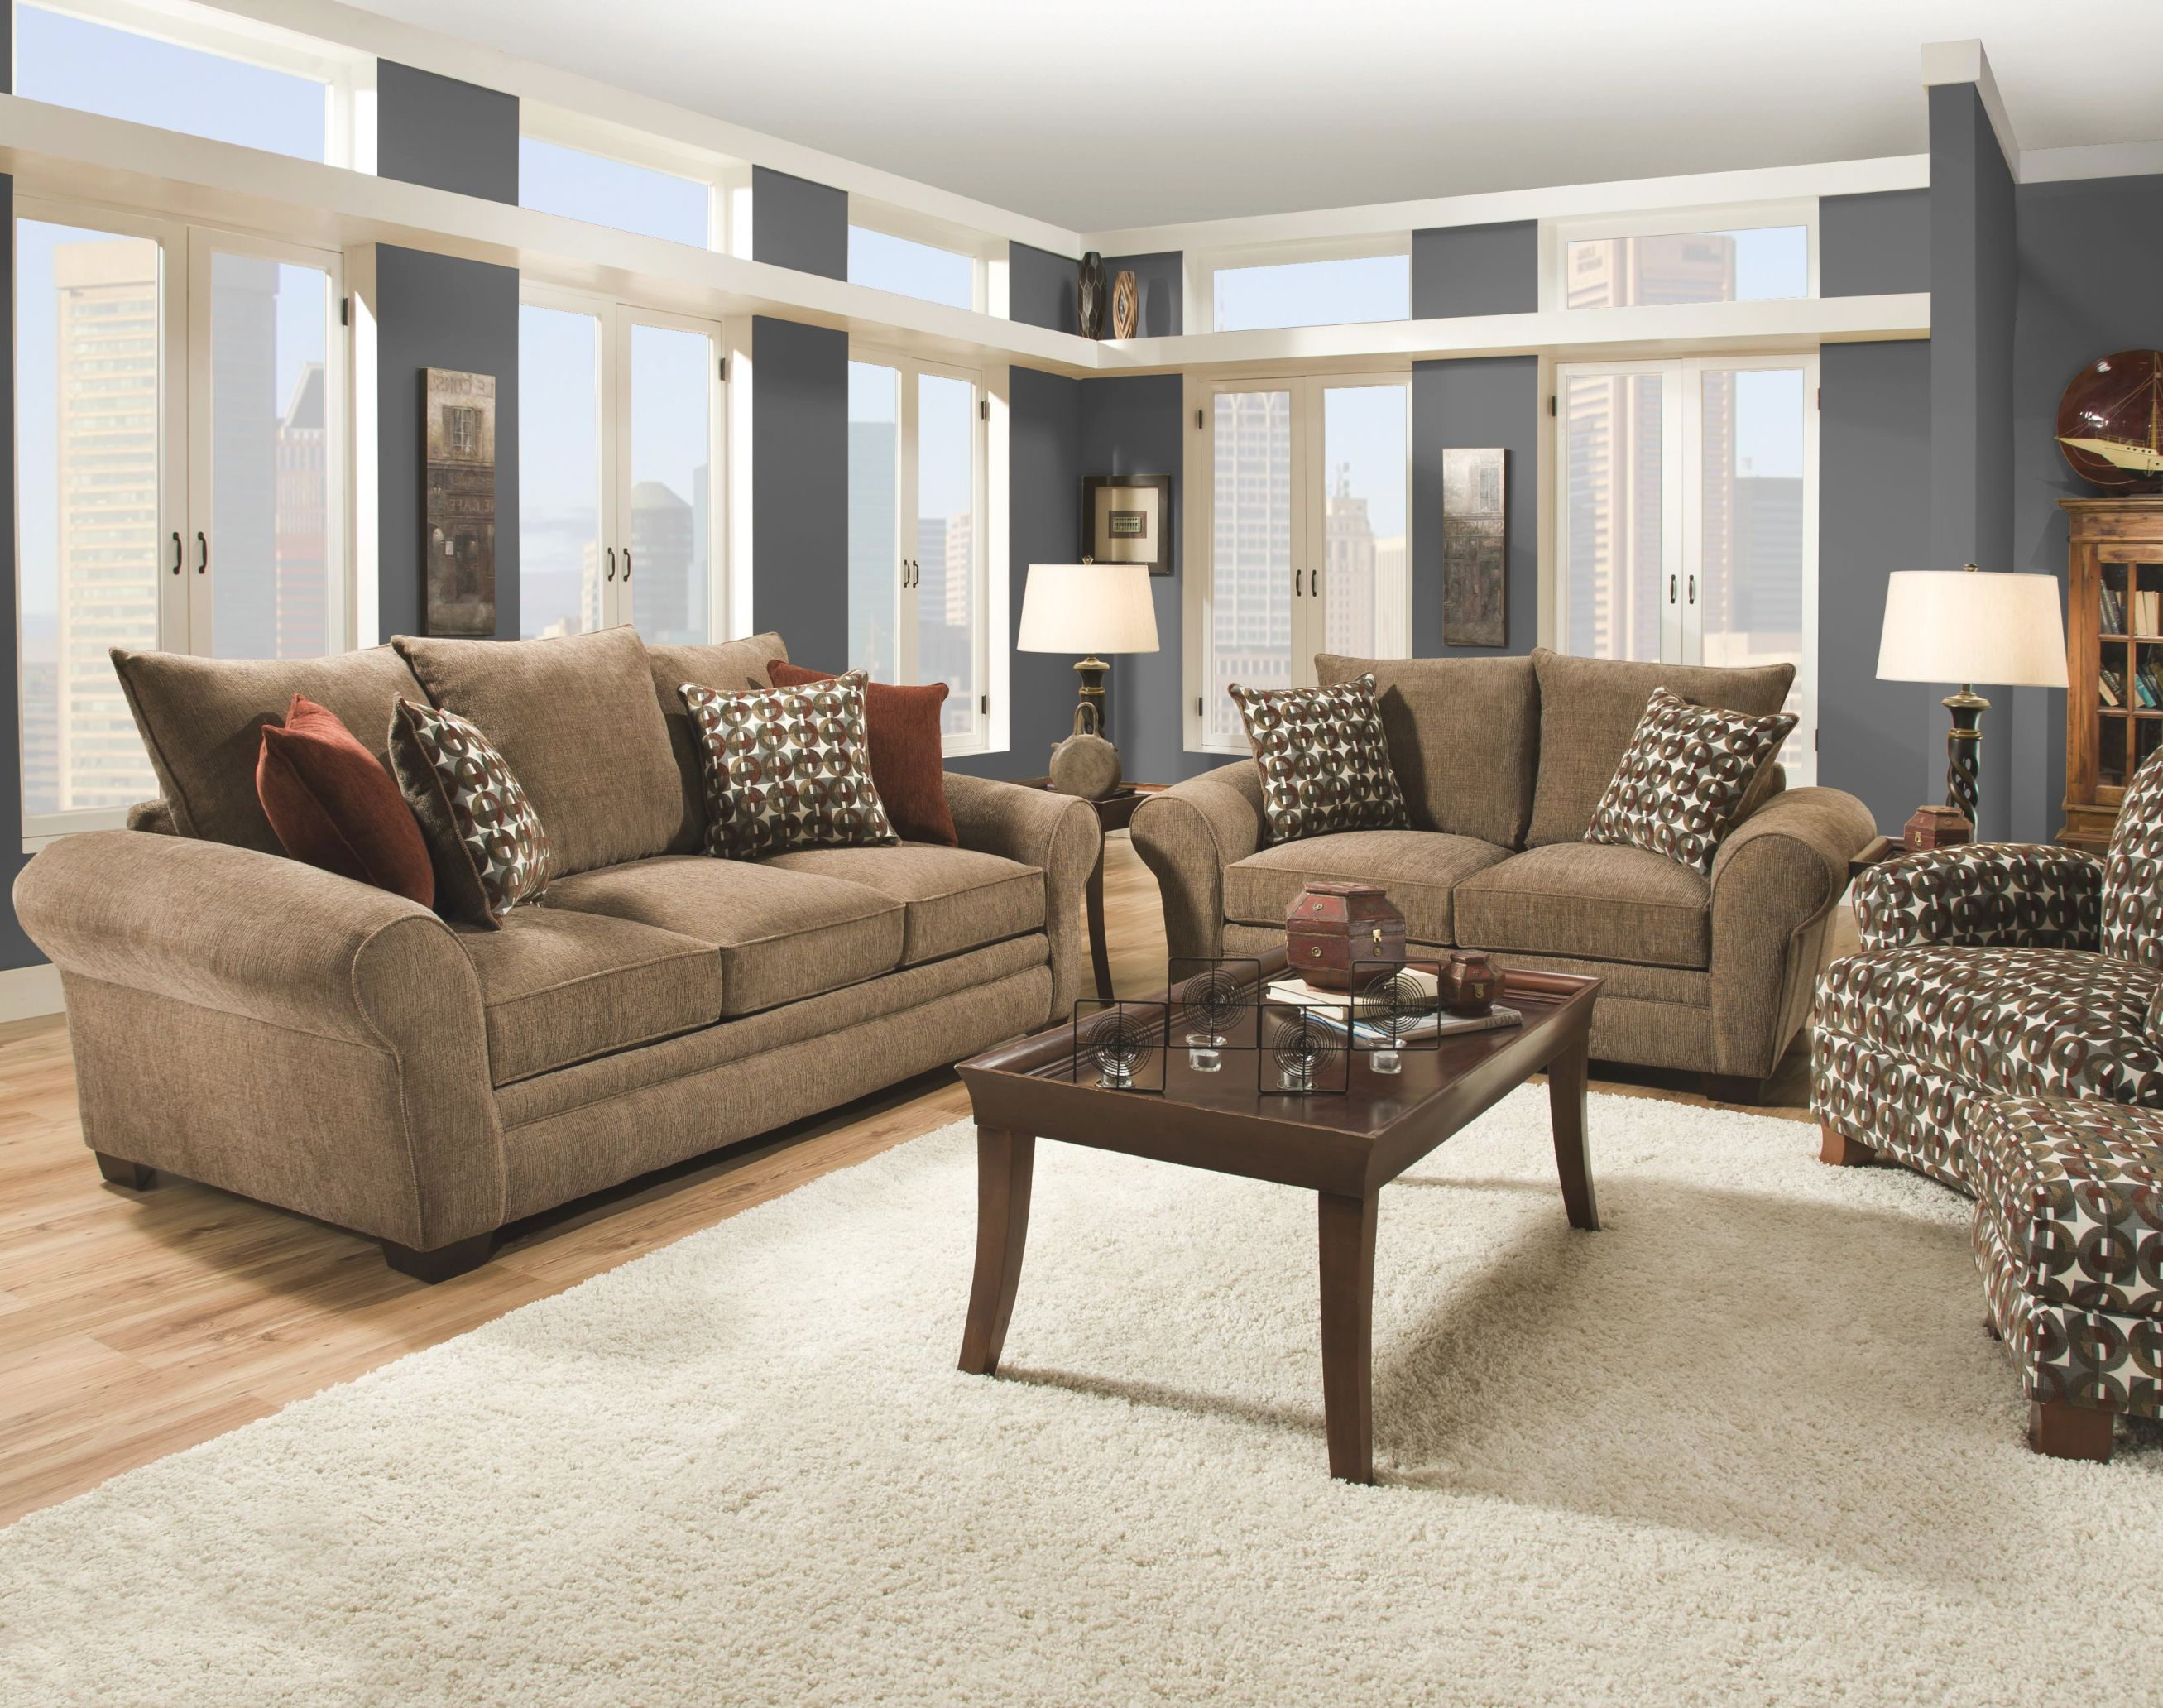 Casual Living Room Furniture At Modern Classic Home Designs